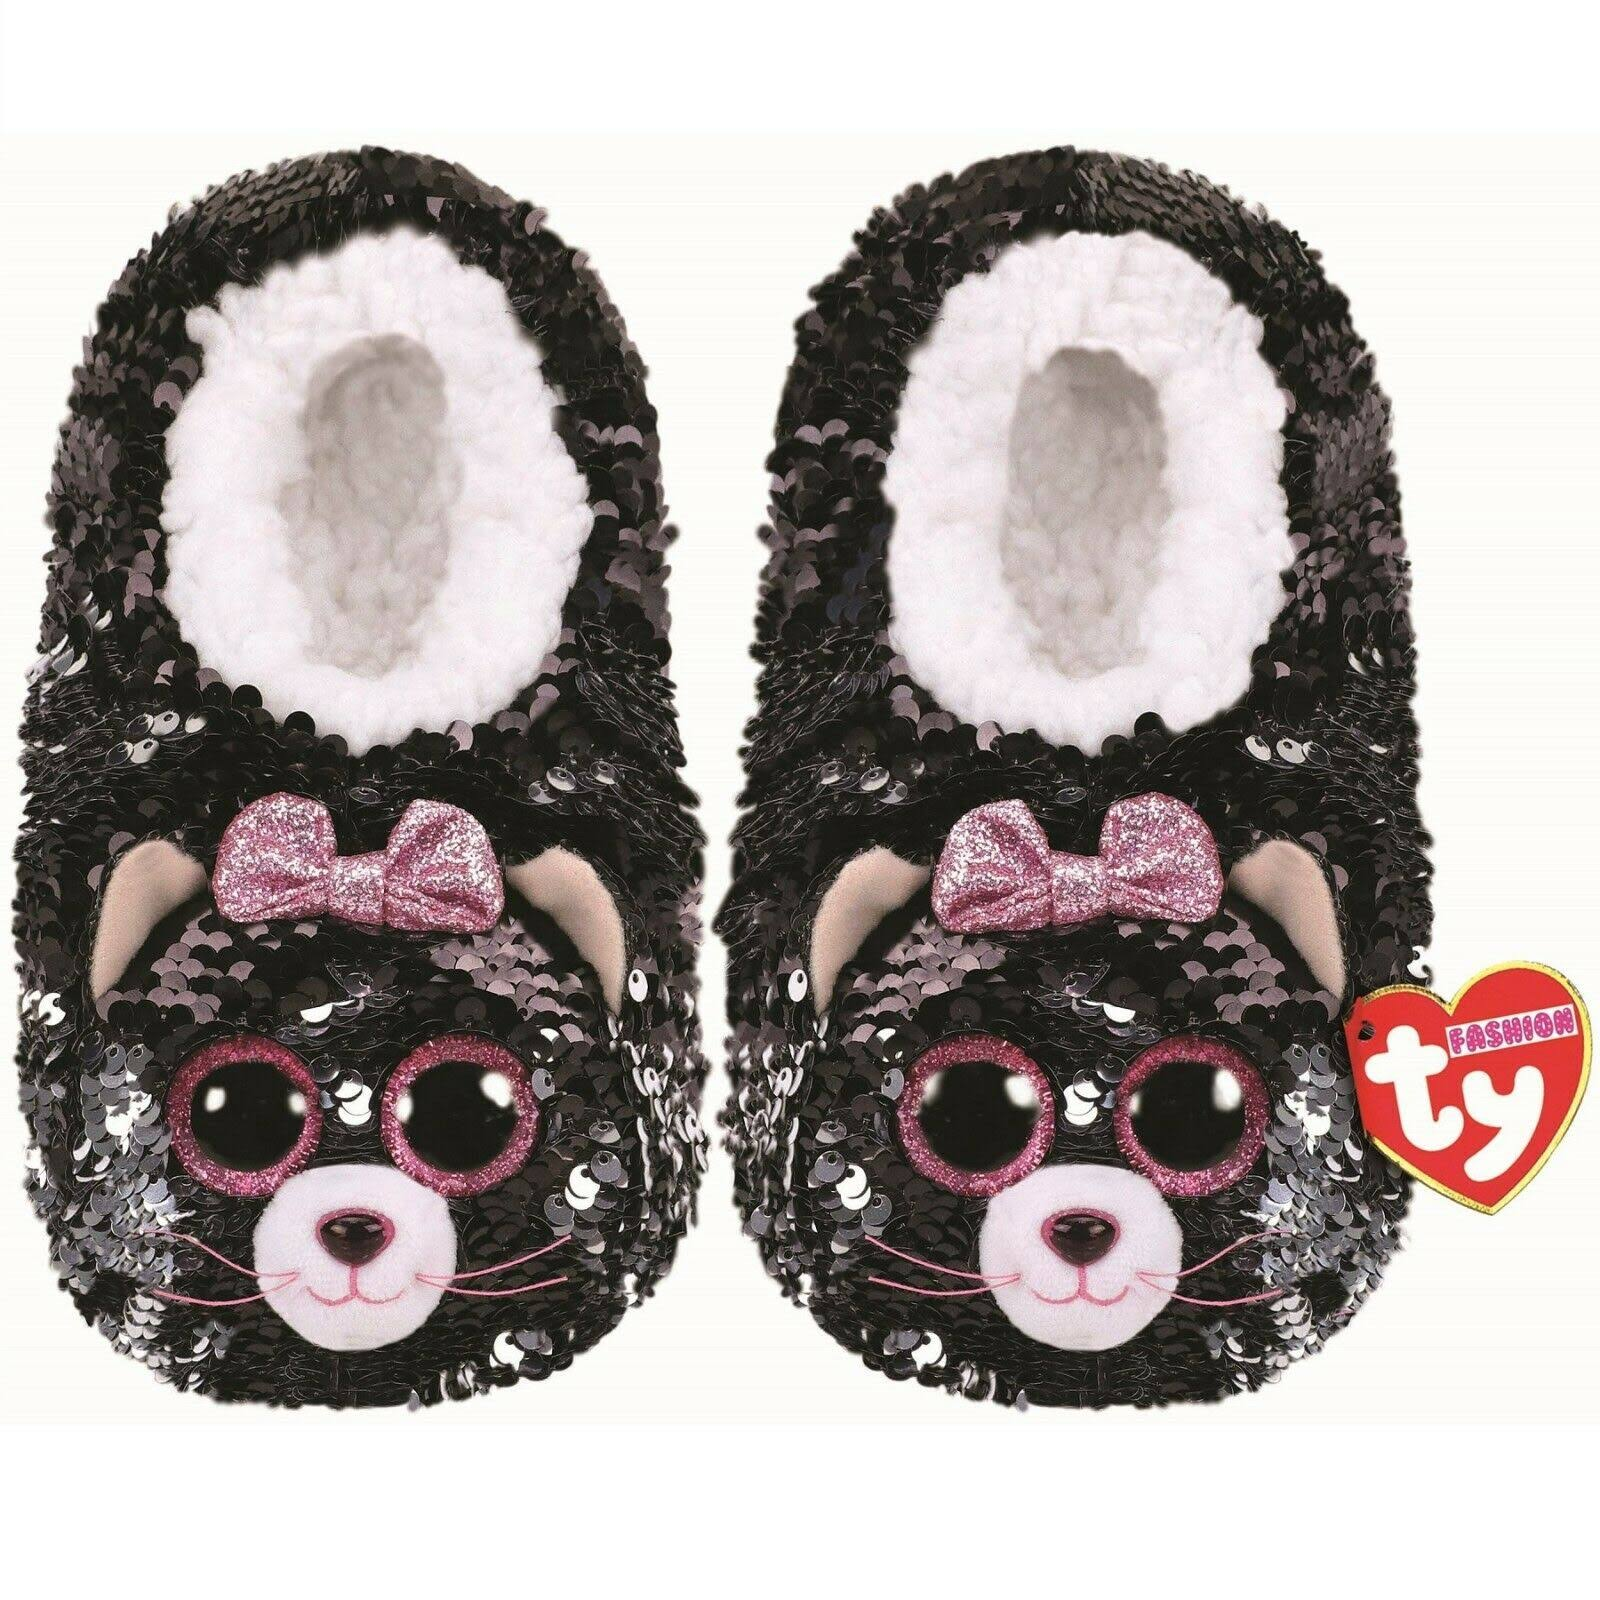 Ty Kiki Cat Flip Slippers Large